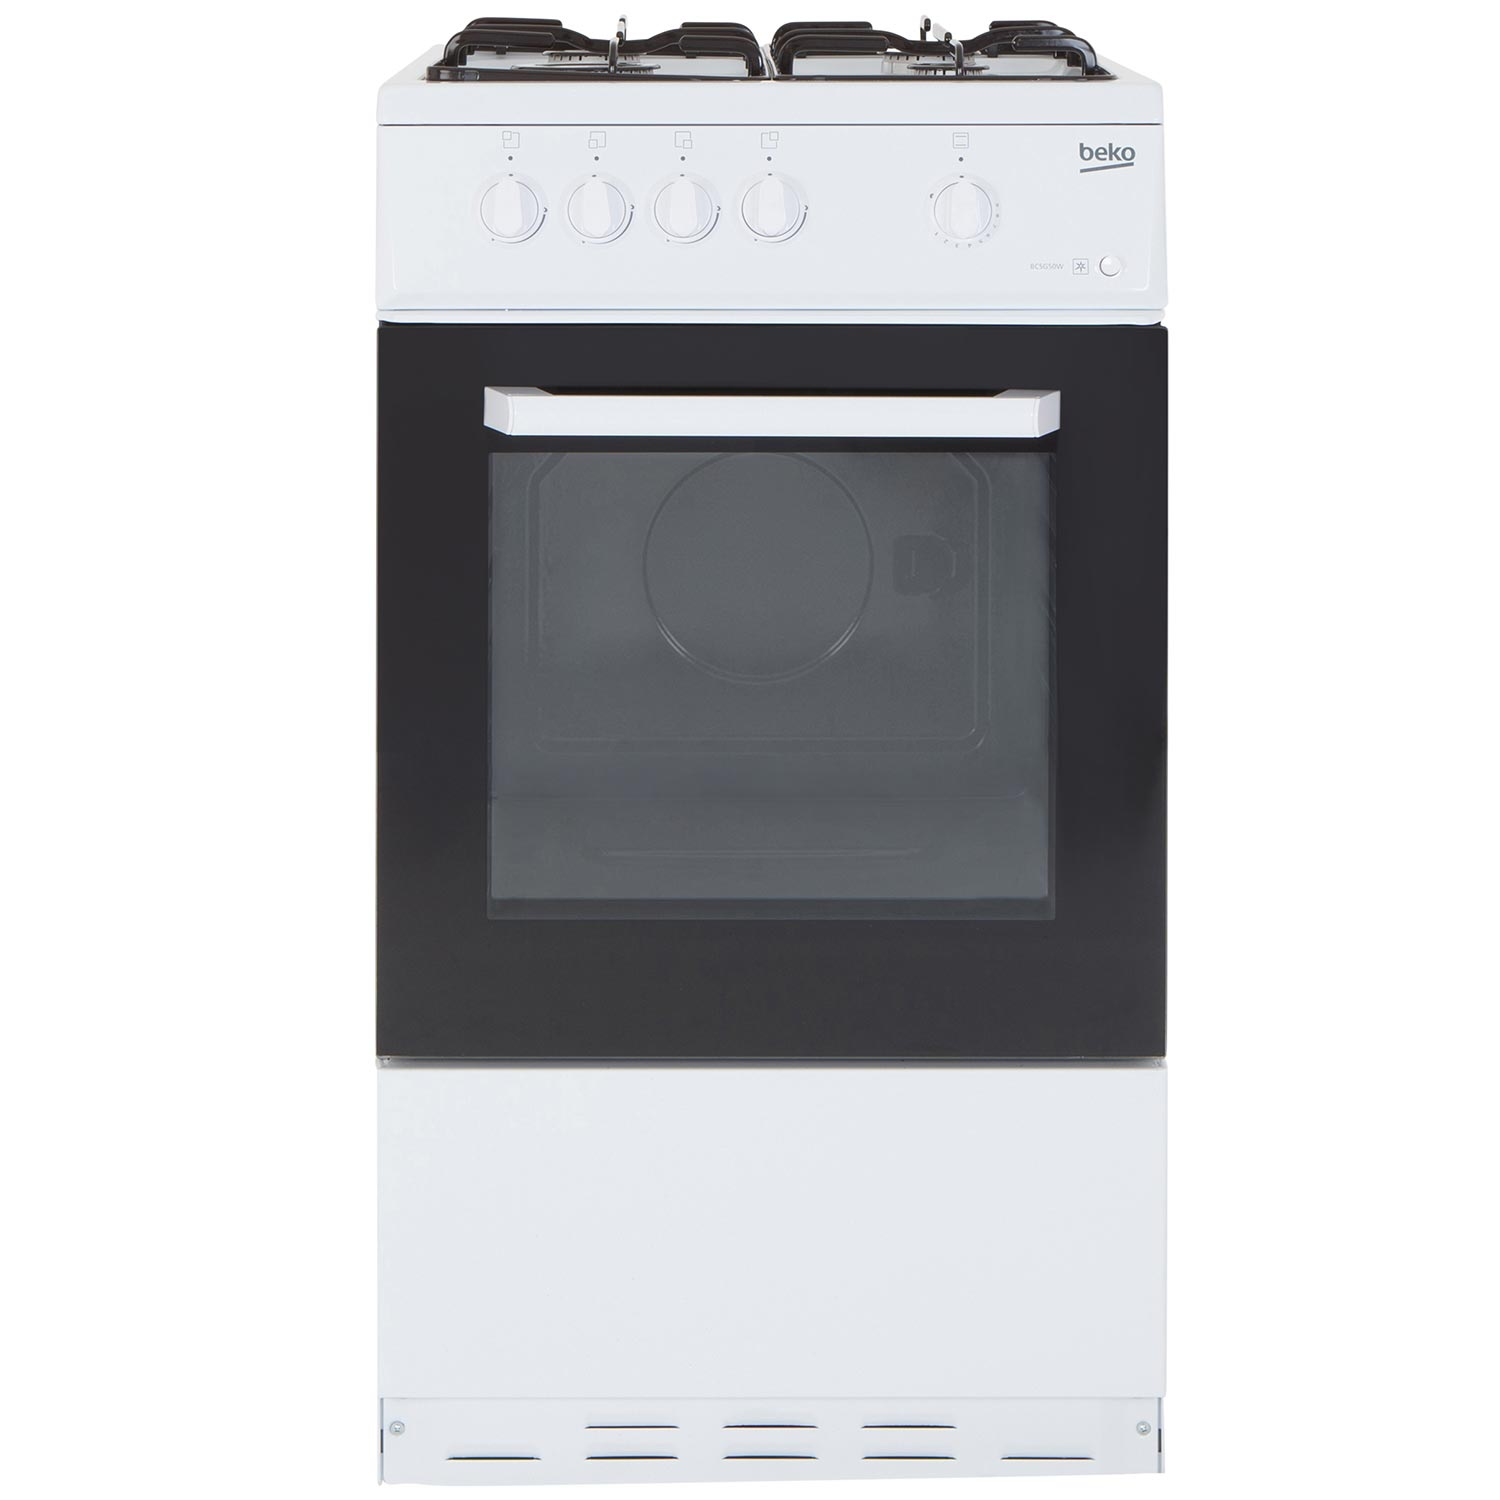 Images of Gas Cooker | 1500x1500